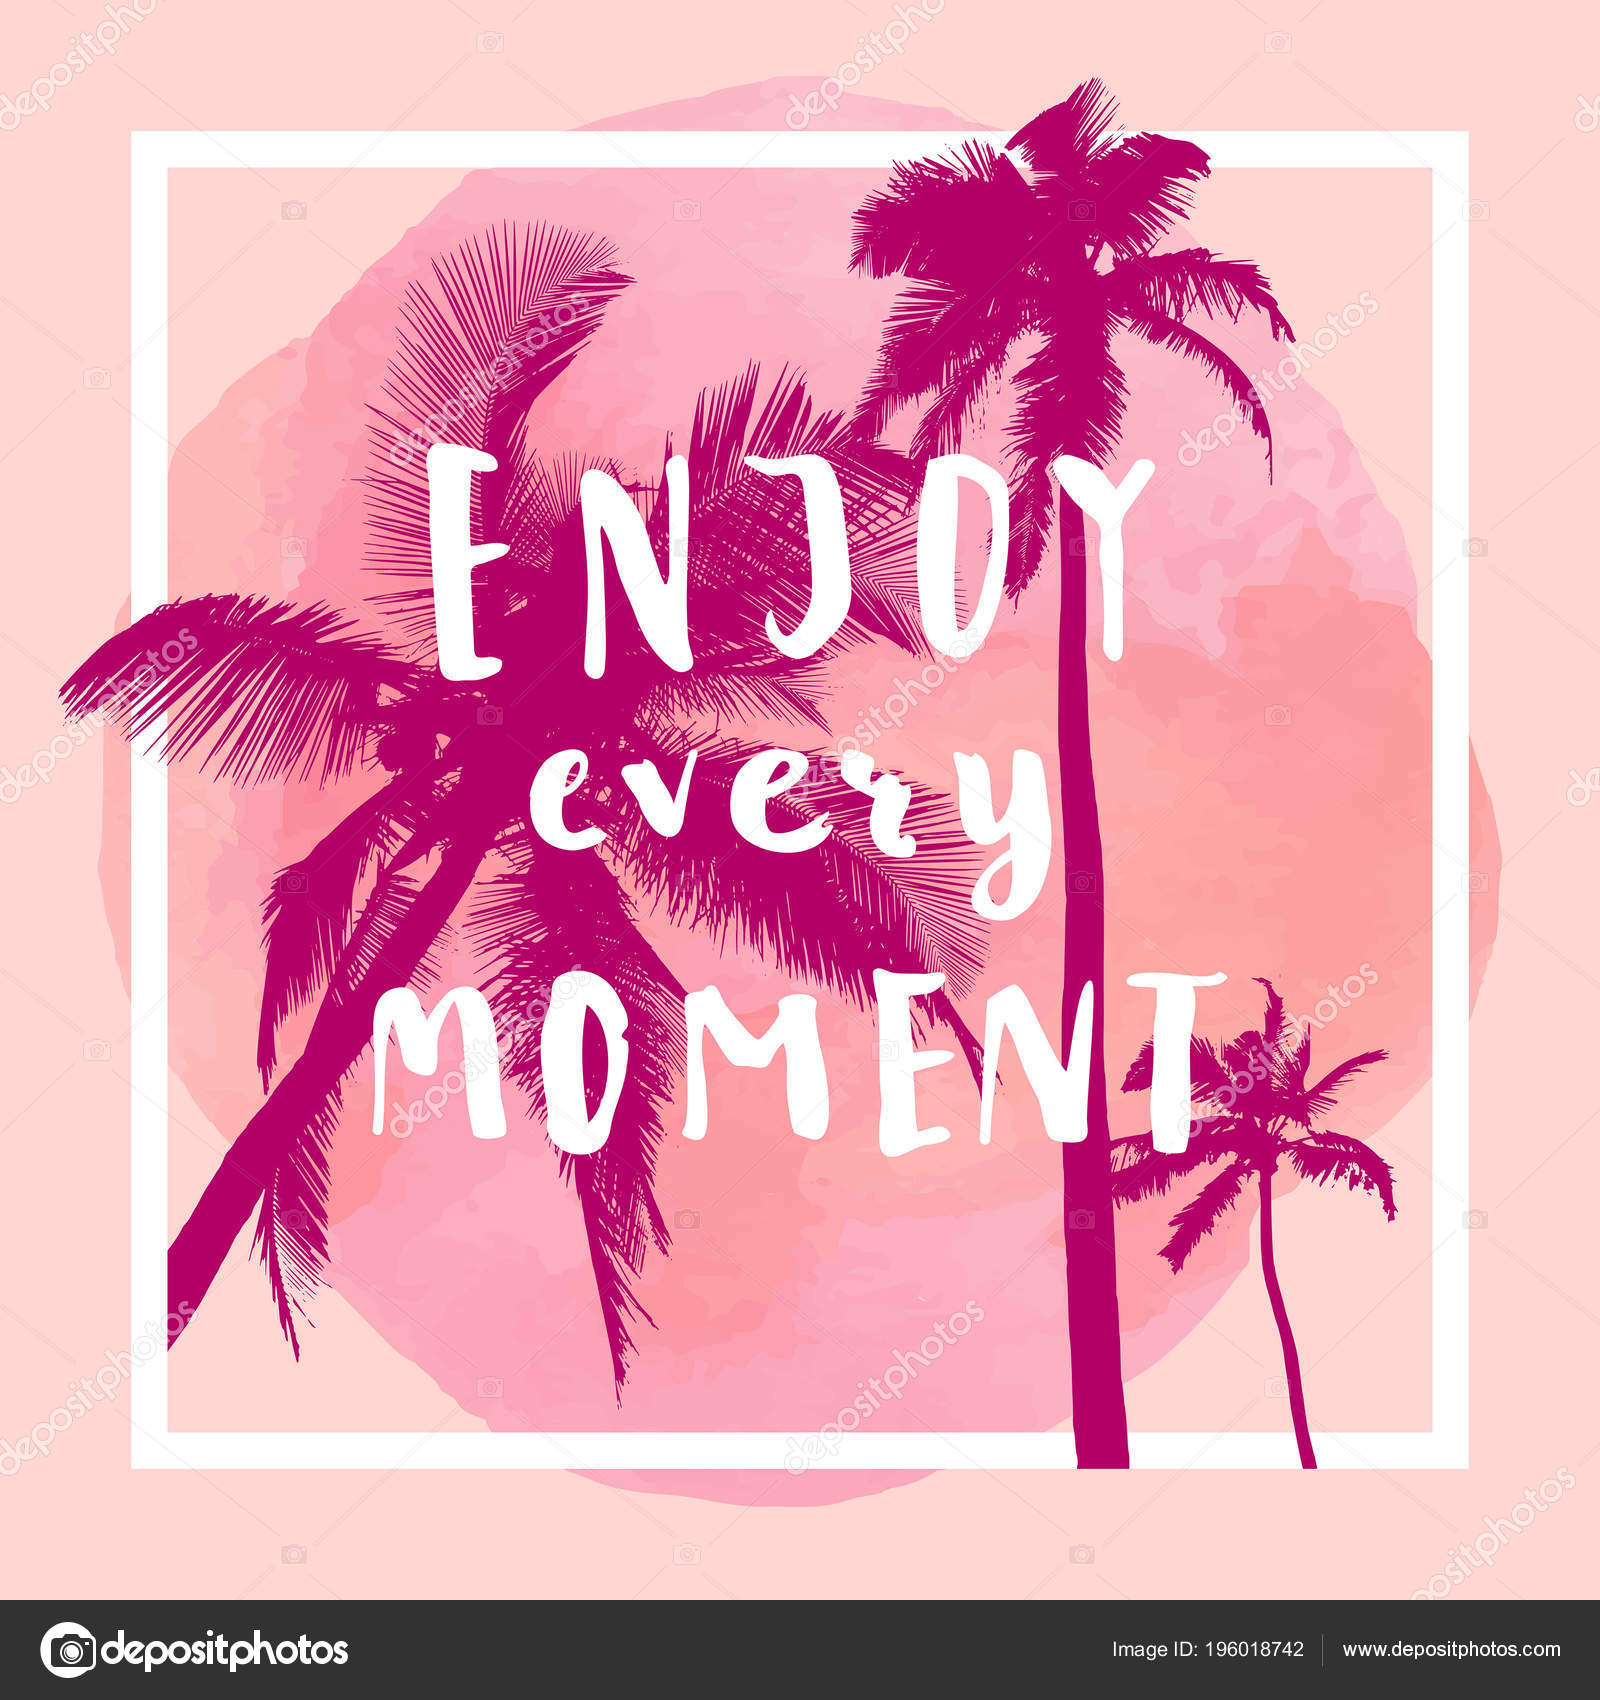 Enjoy Every Moment Handwritten Inspirational Quote Greeting Card